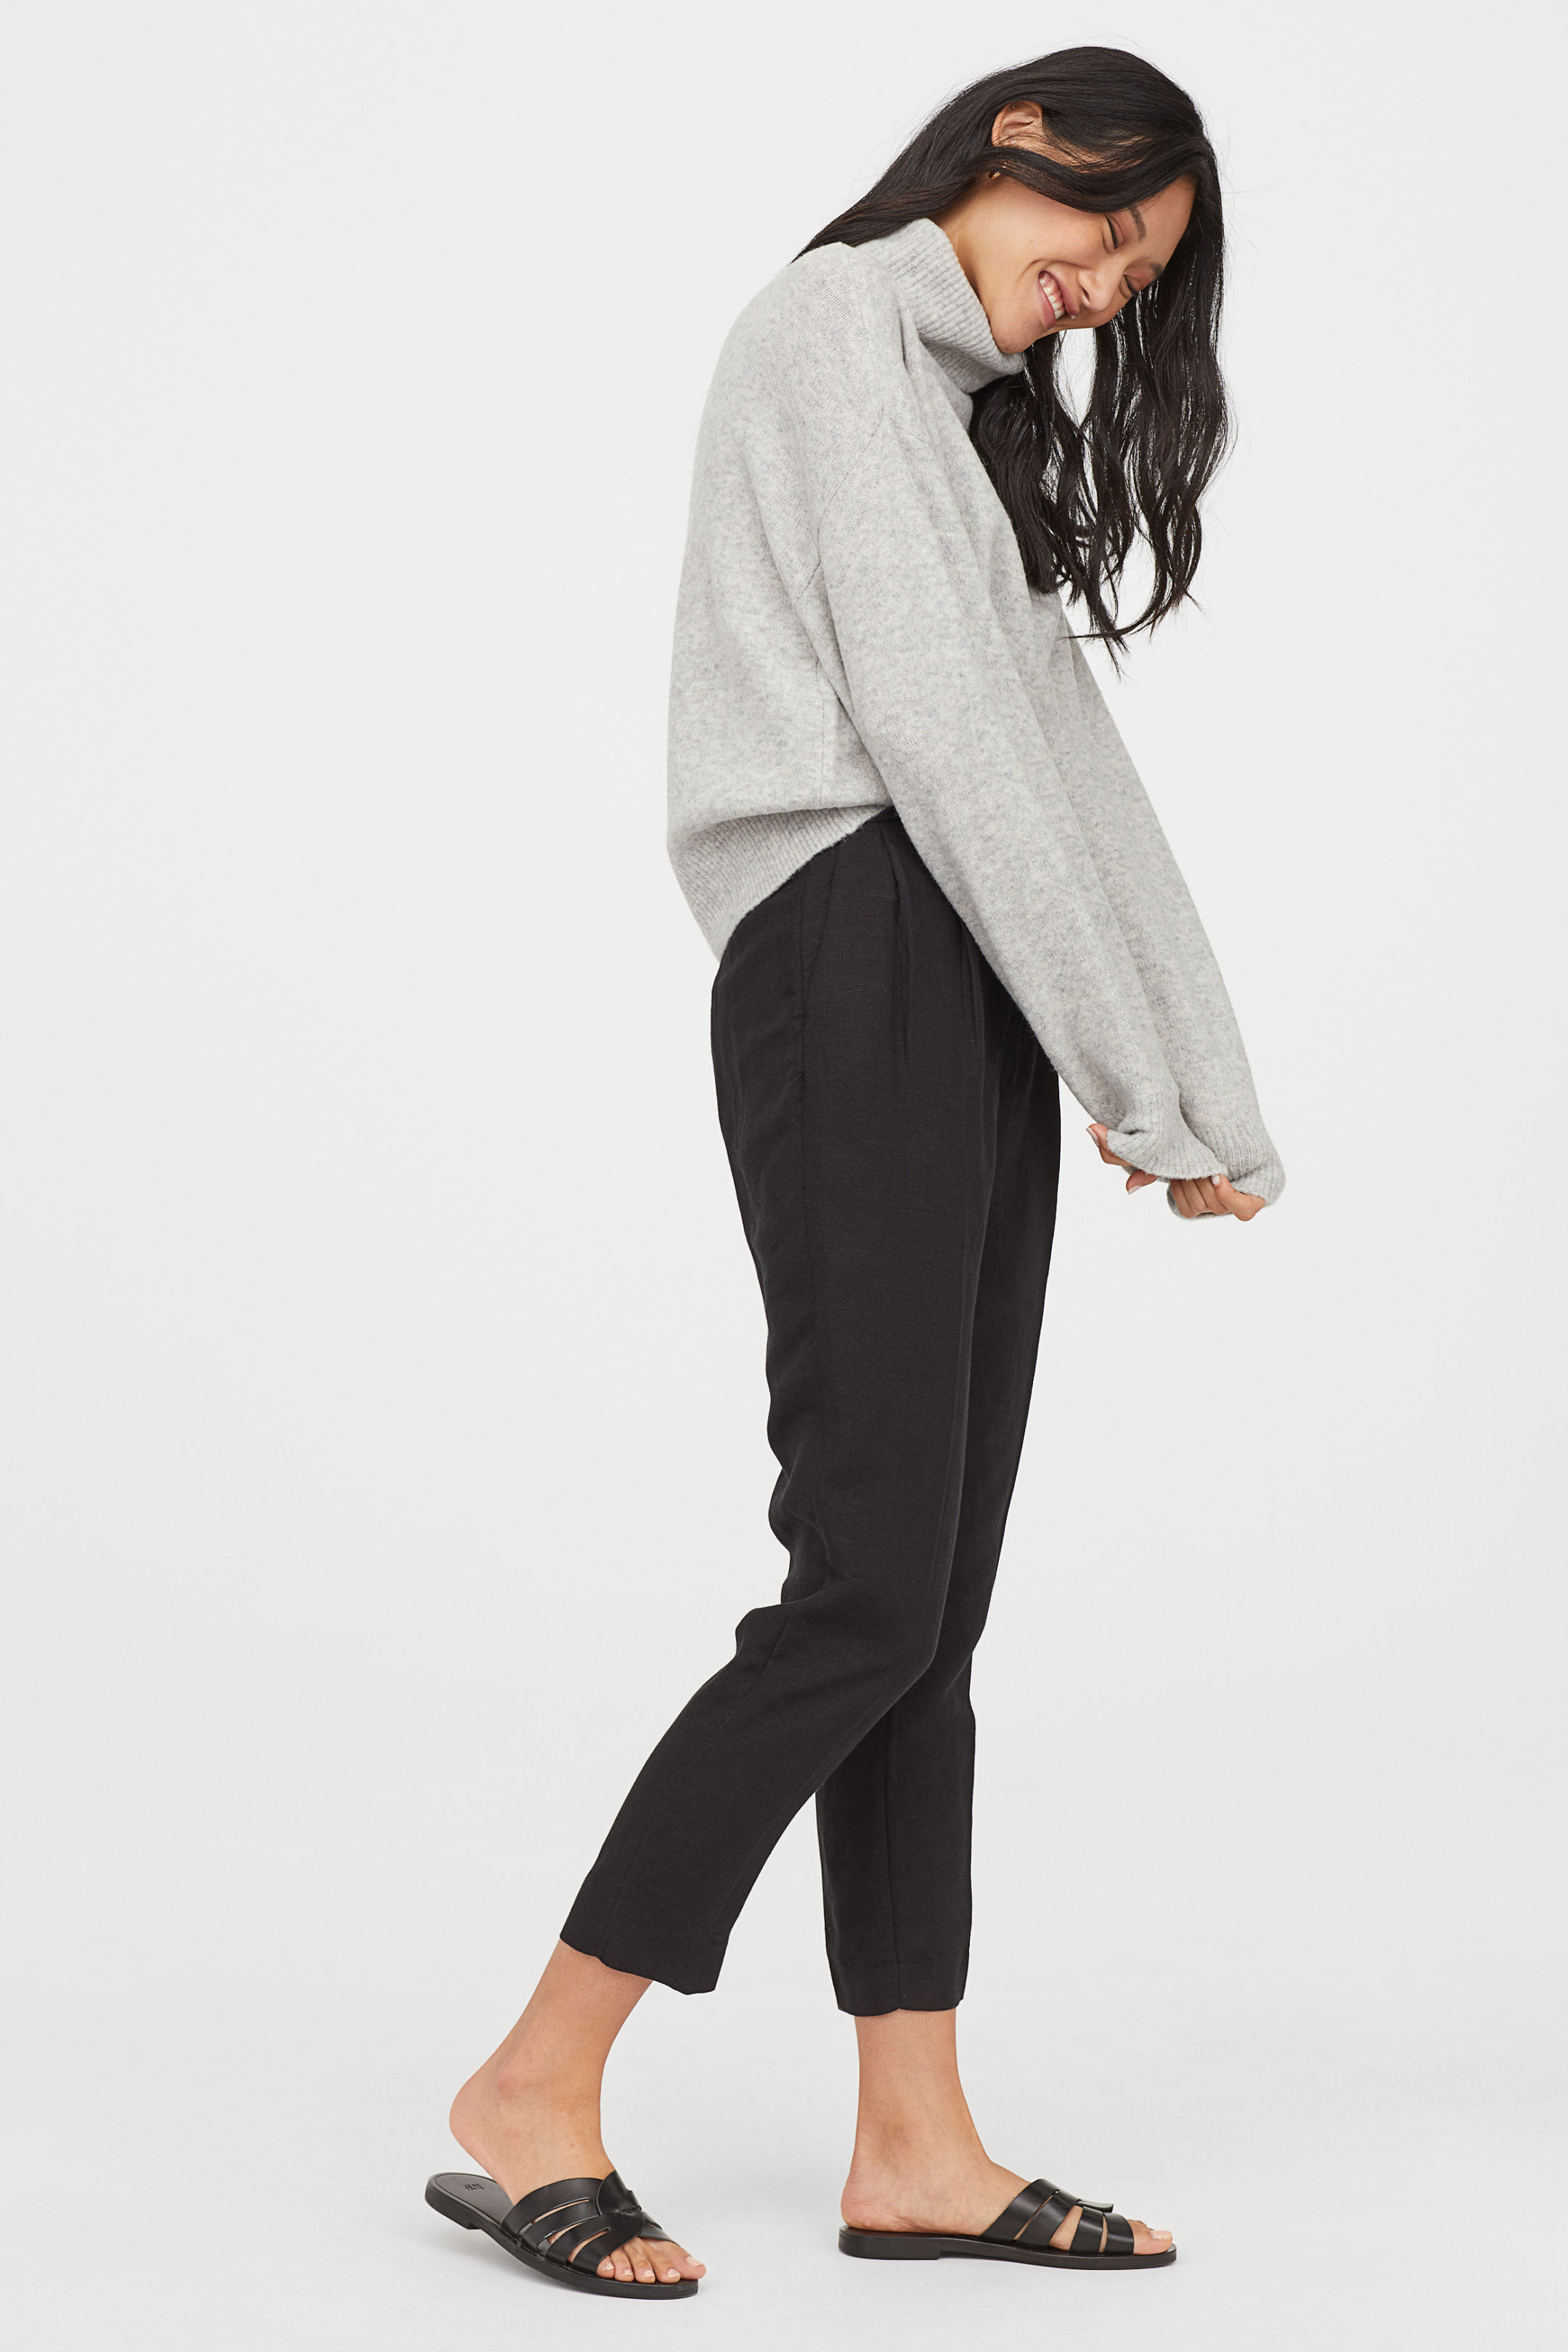 H&M Knit Turtleneck Sweater, Ruffled Apron, weekly finds